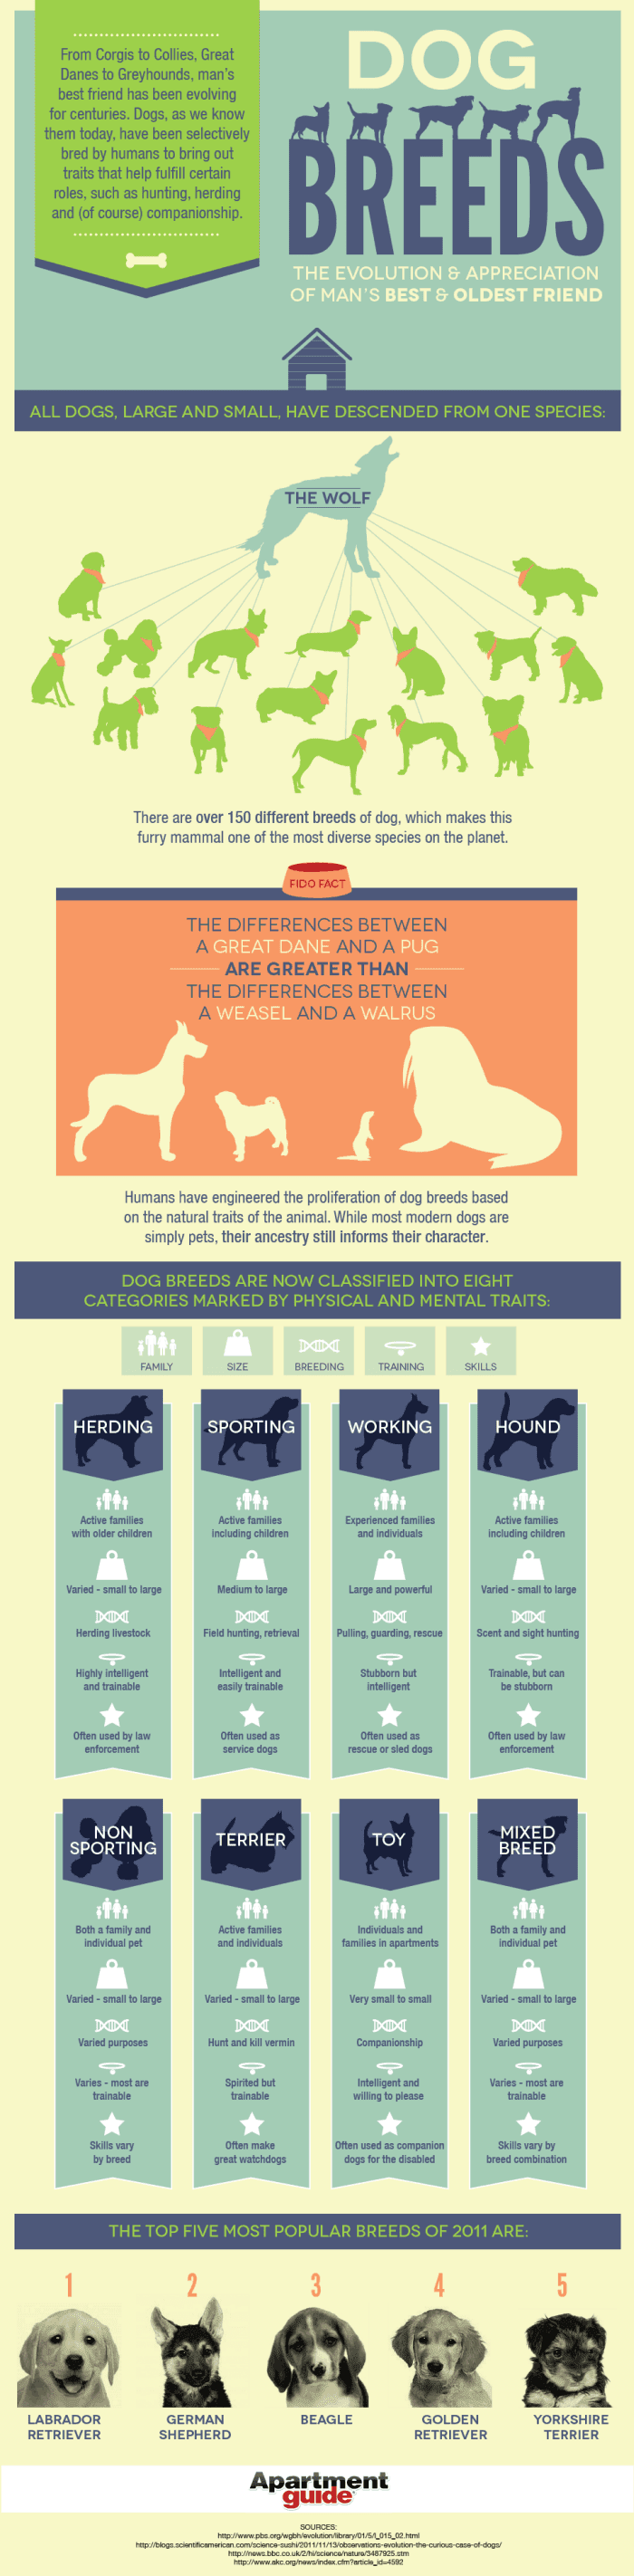 Top Dog Breeds